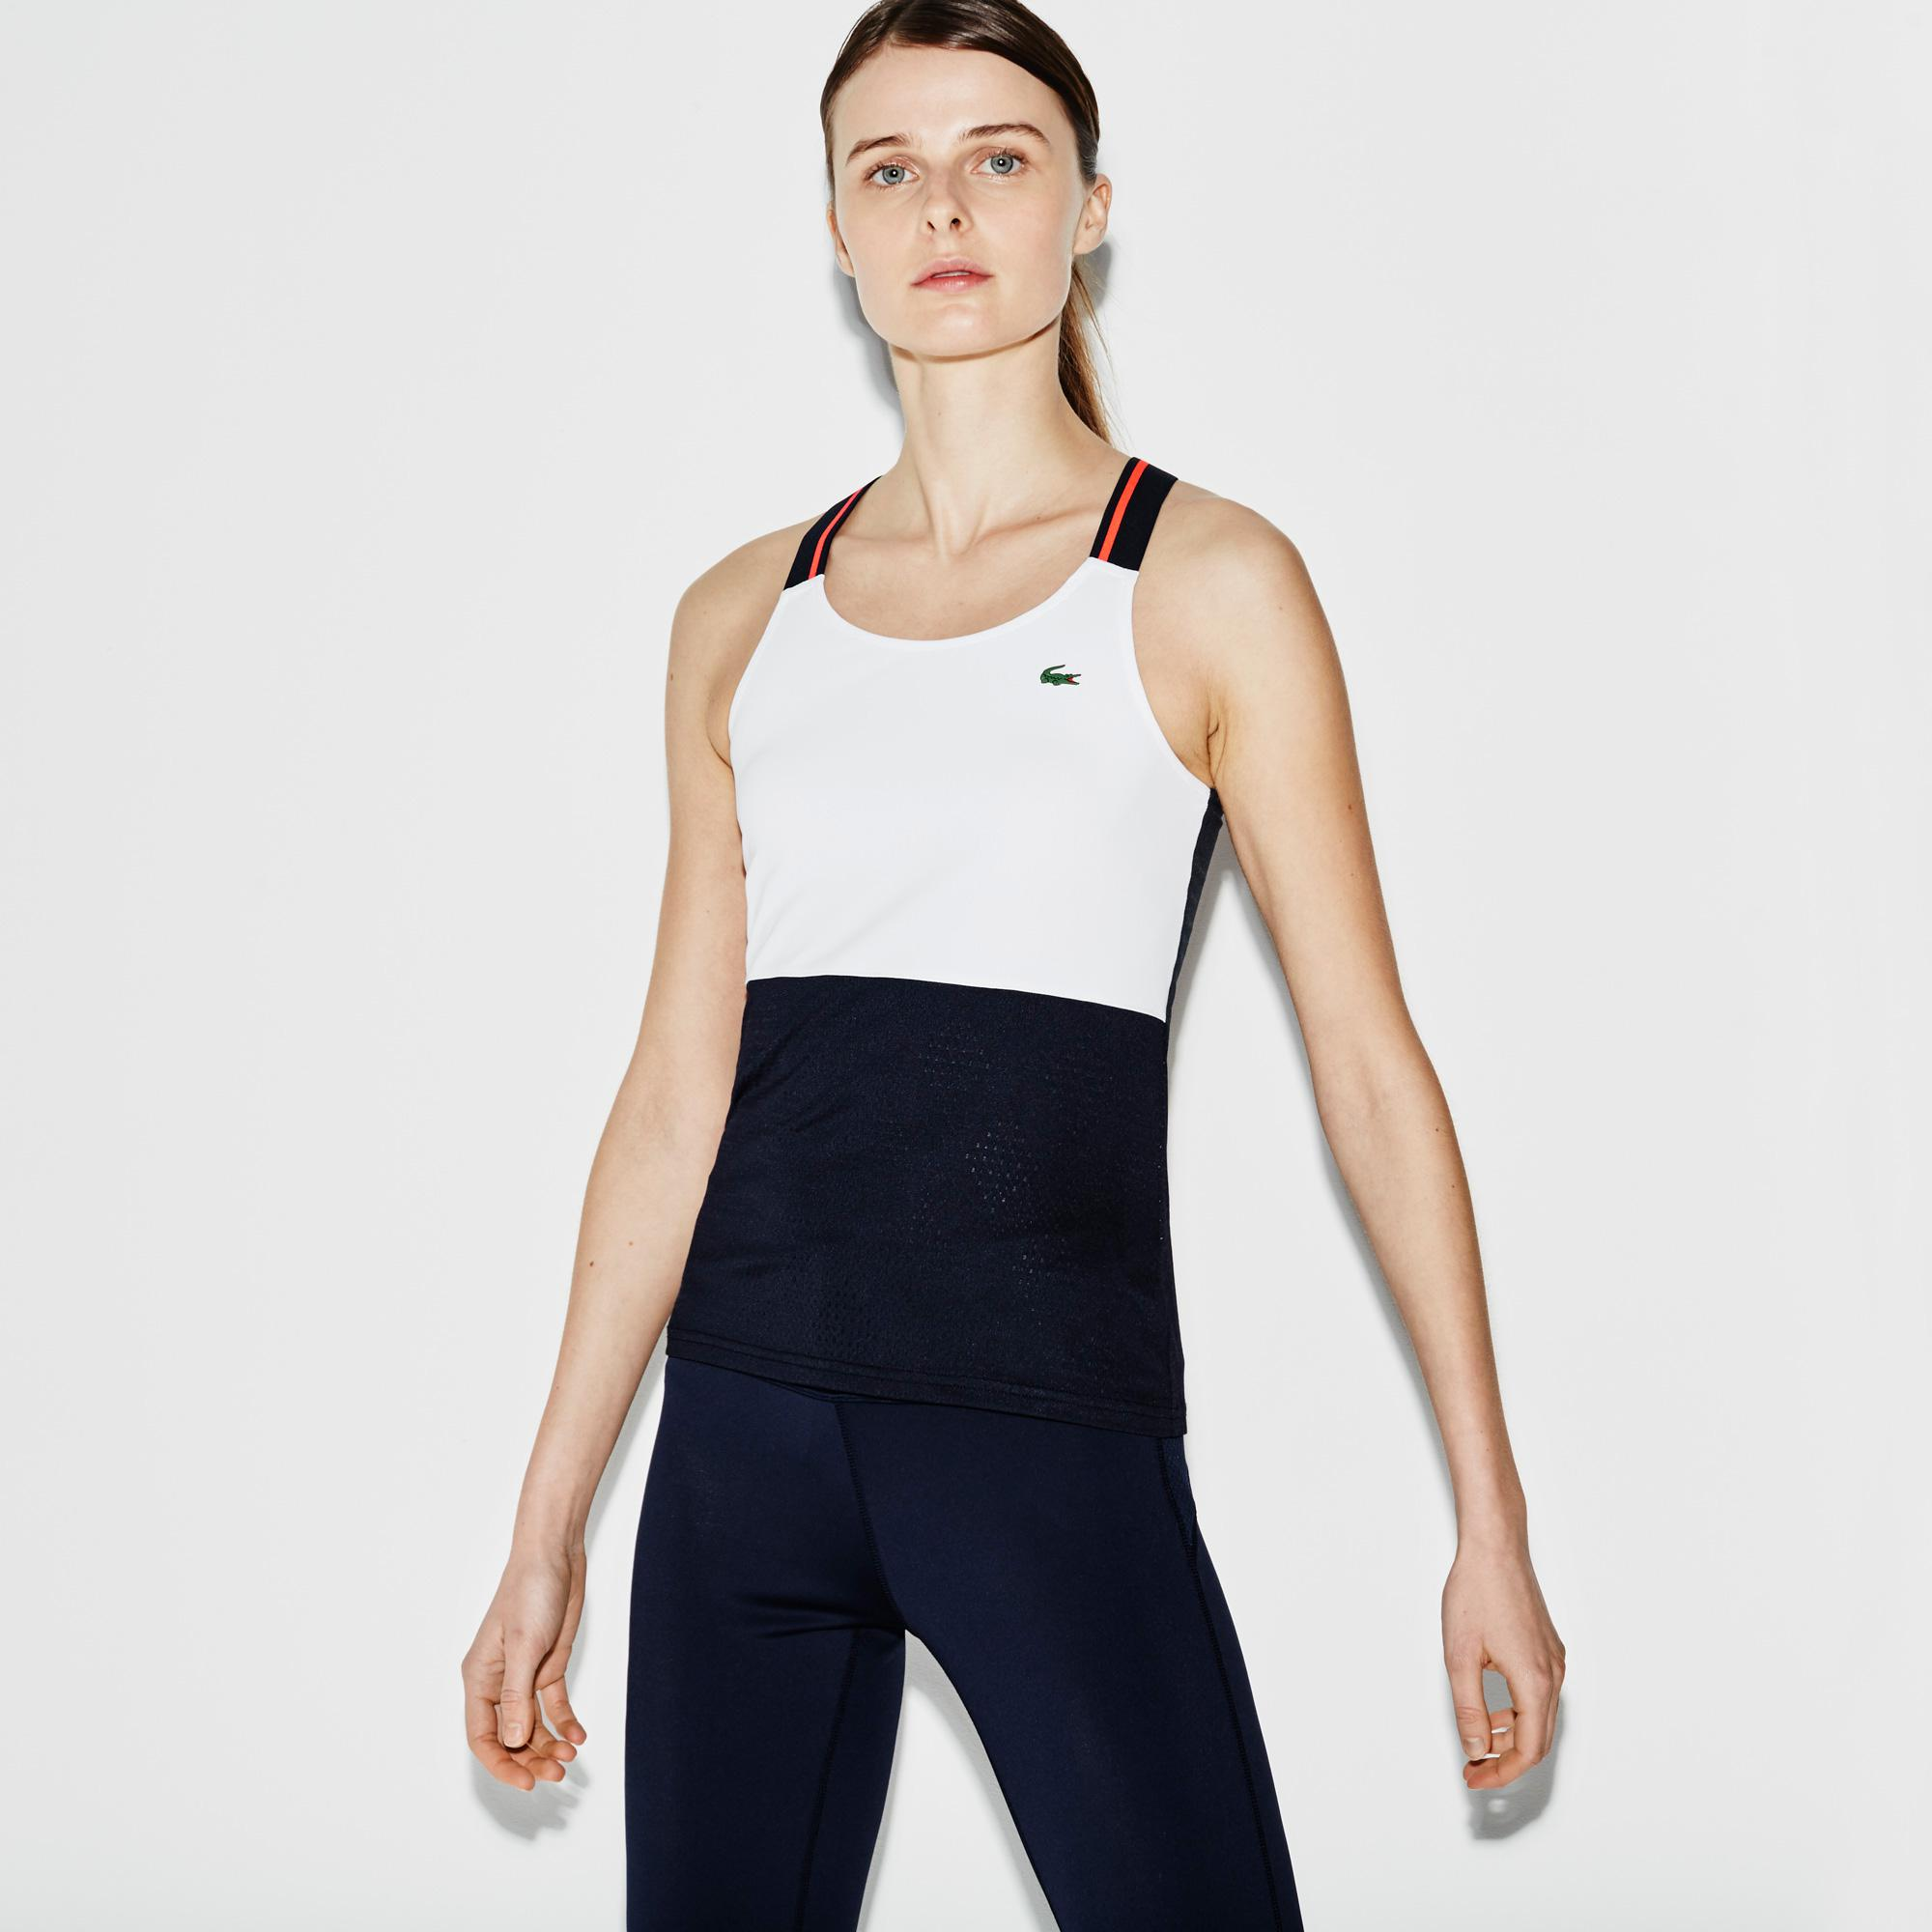 Lacoste Womens Tennis Tank Top - White/Navy - Tennisnuts.com